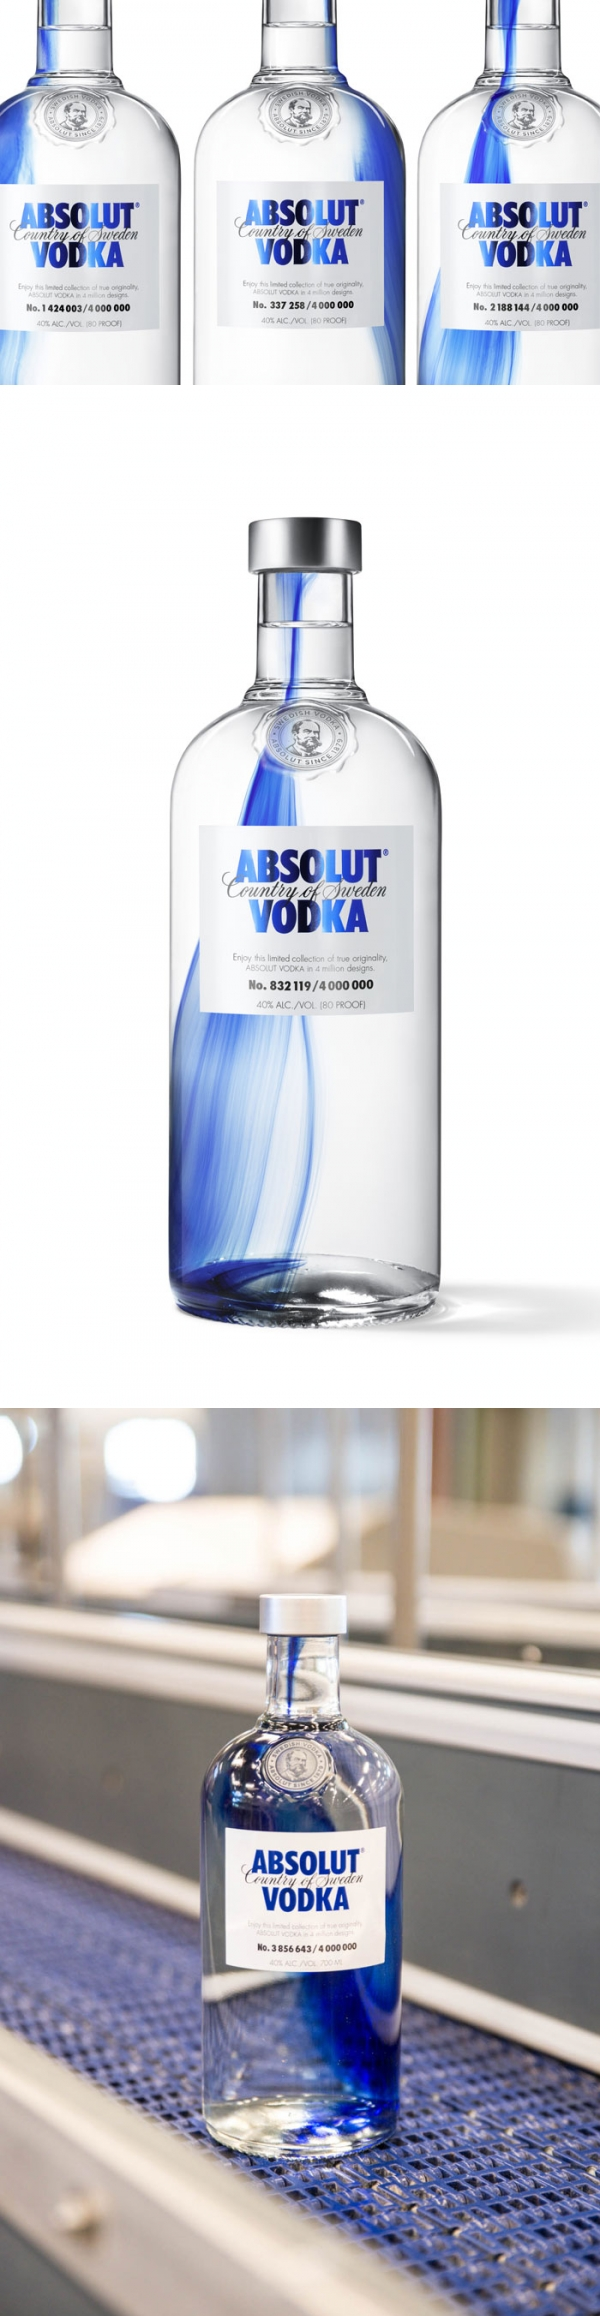 a single drop of cobalt blue dye was added to the glass as a it cooled, resulting in a completely one of a kind Absolut Vodka #bottle #packaging